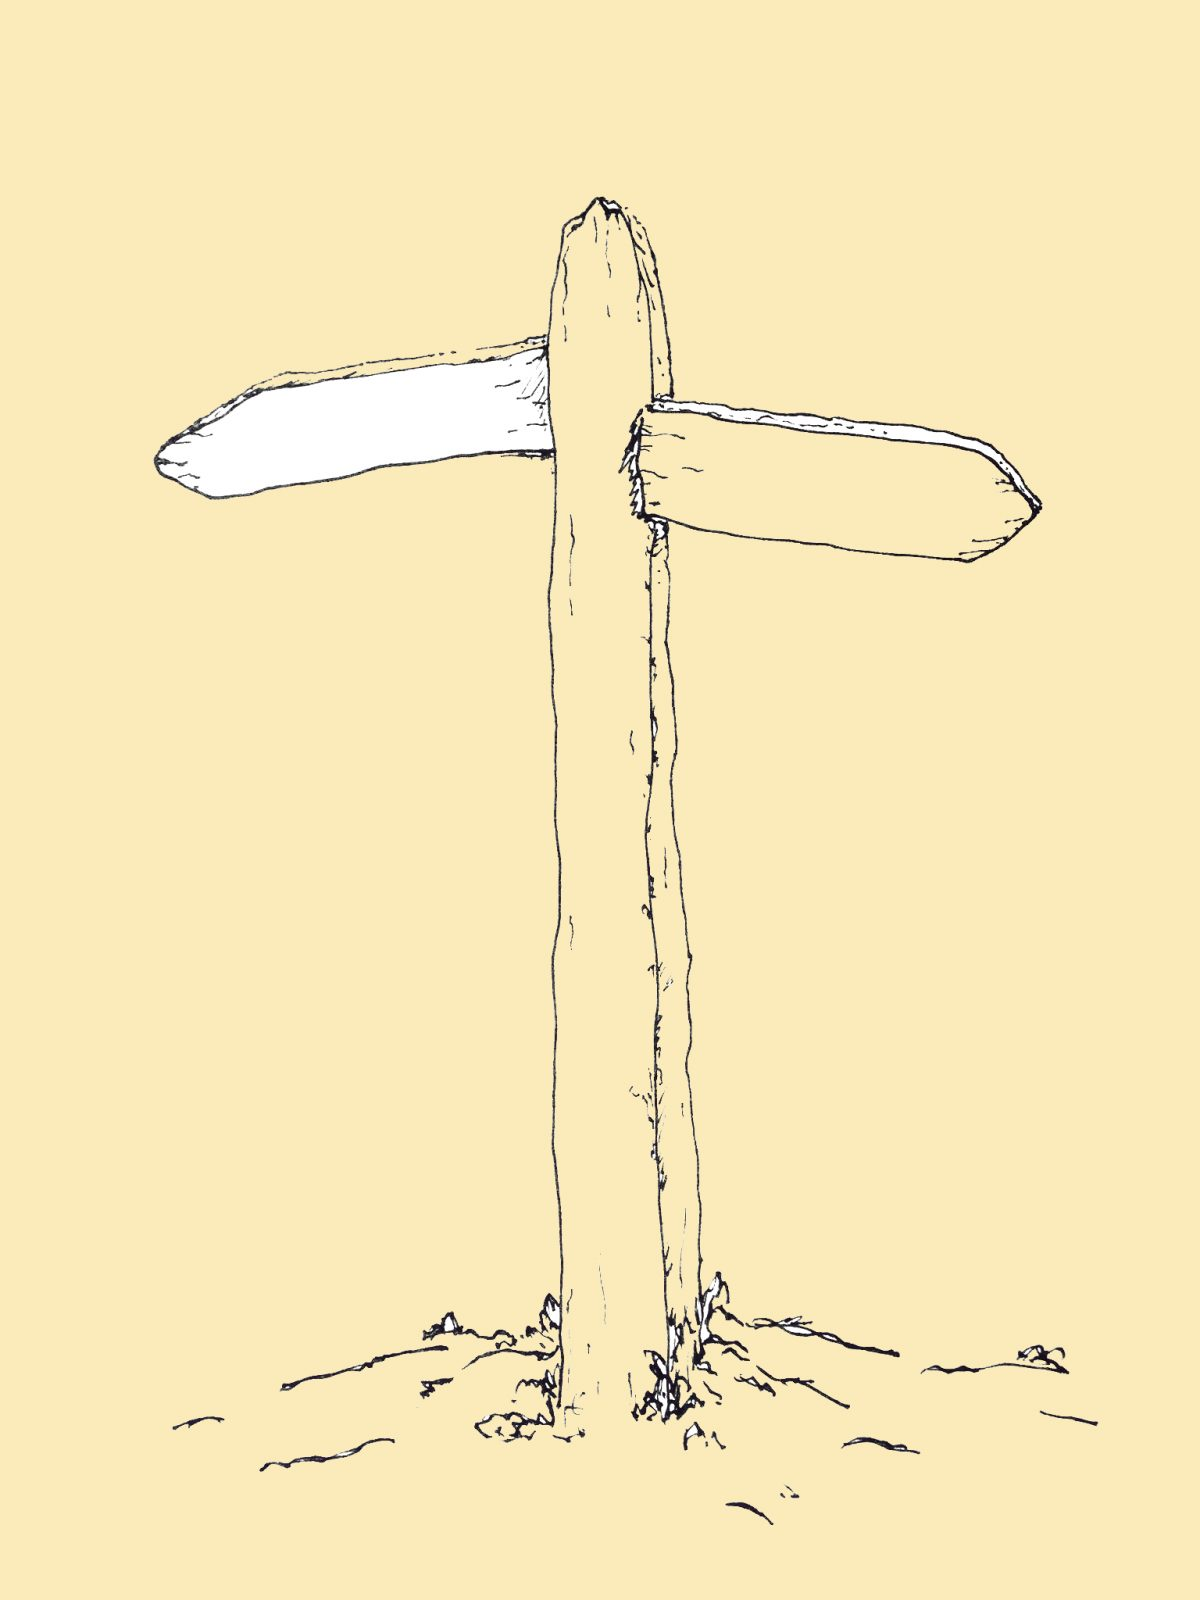 Line drawing of a finger post sign